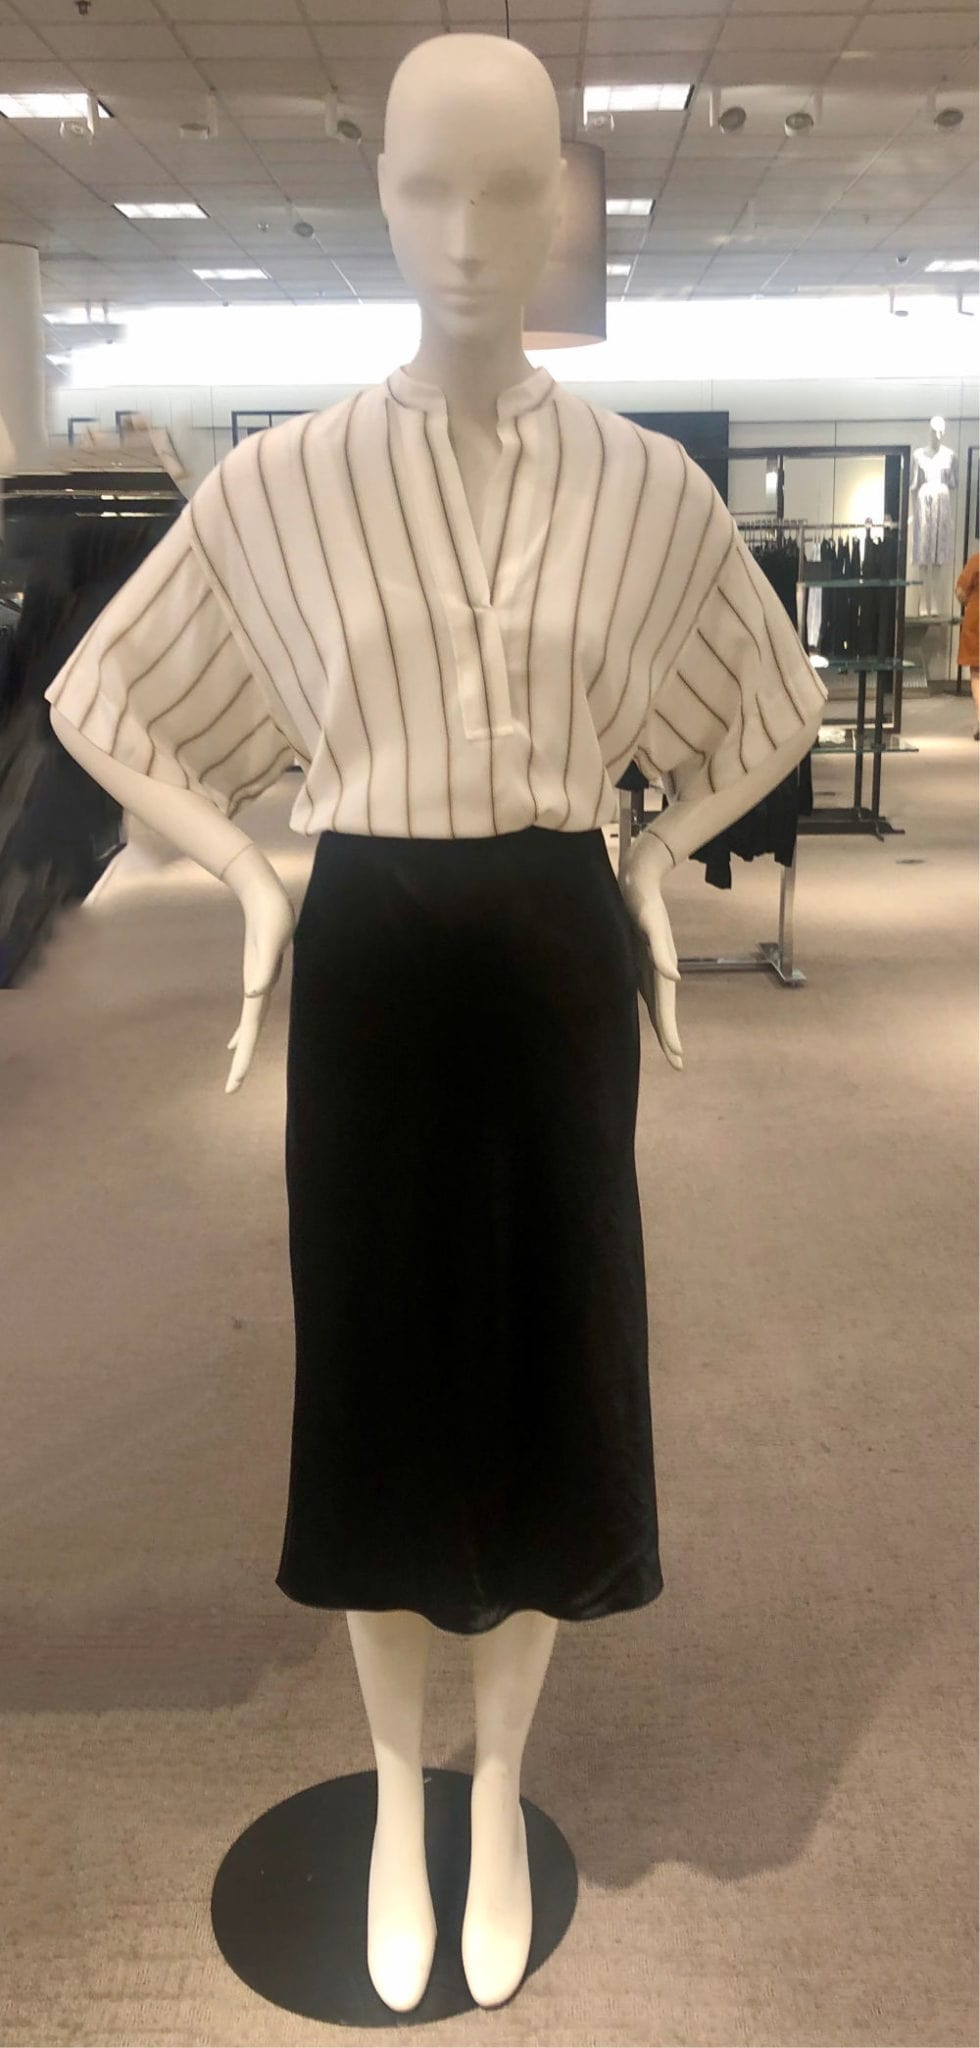 MANNEQUIN WEARING STRIPED TOP AND BLACK TULIP SKIRT